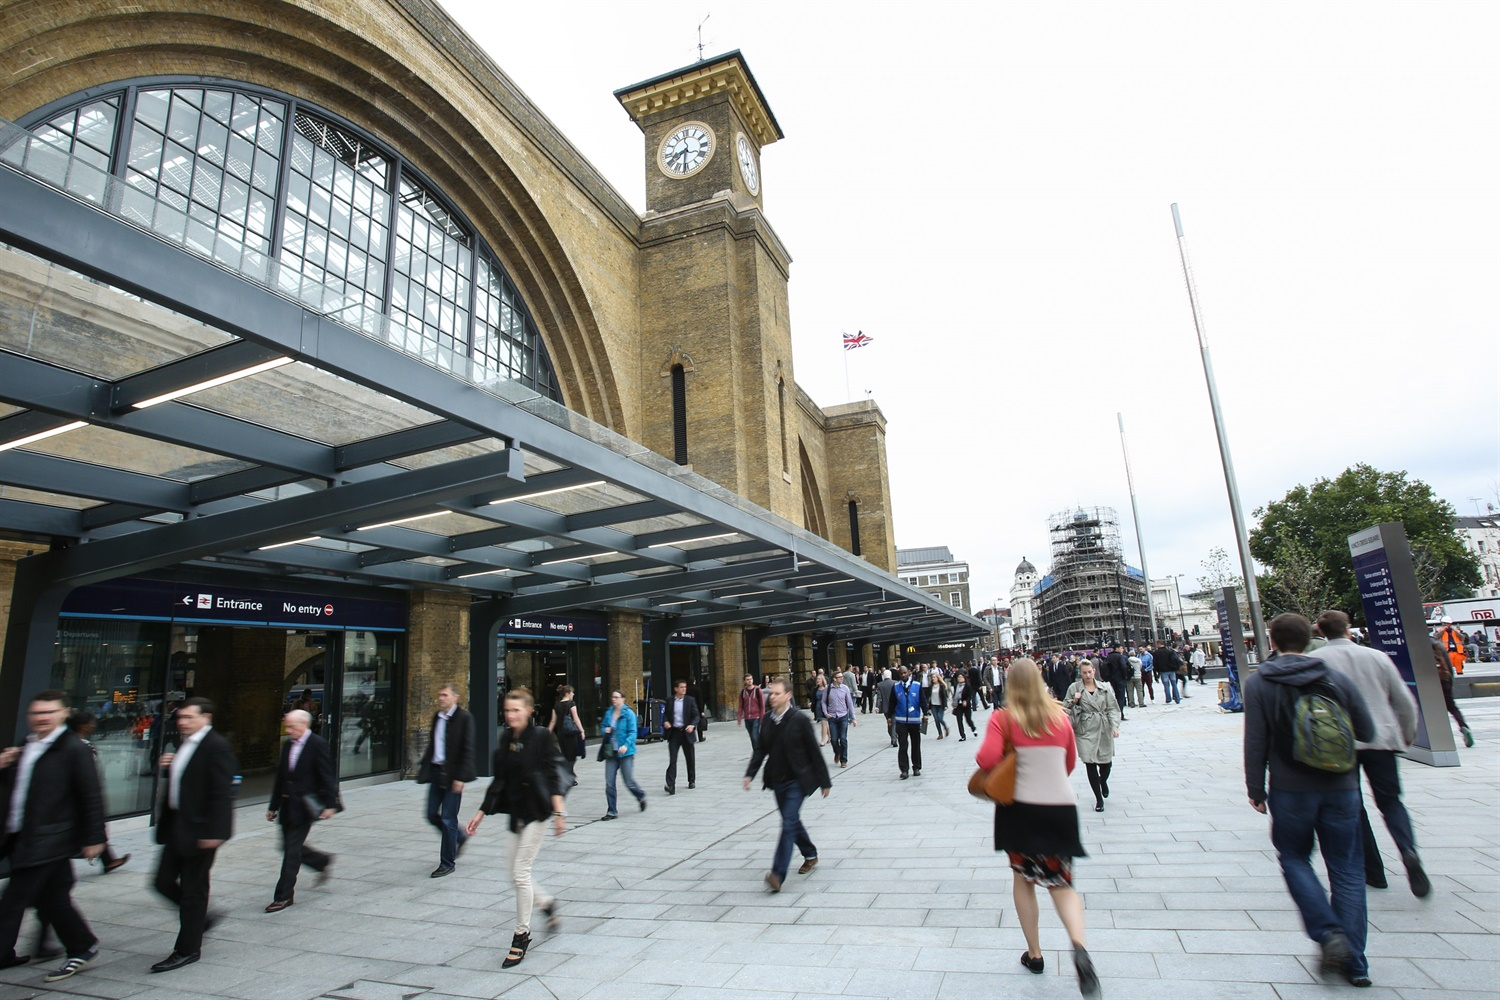 Row over Network Rail's future worsens as campaign launched to stop station sales